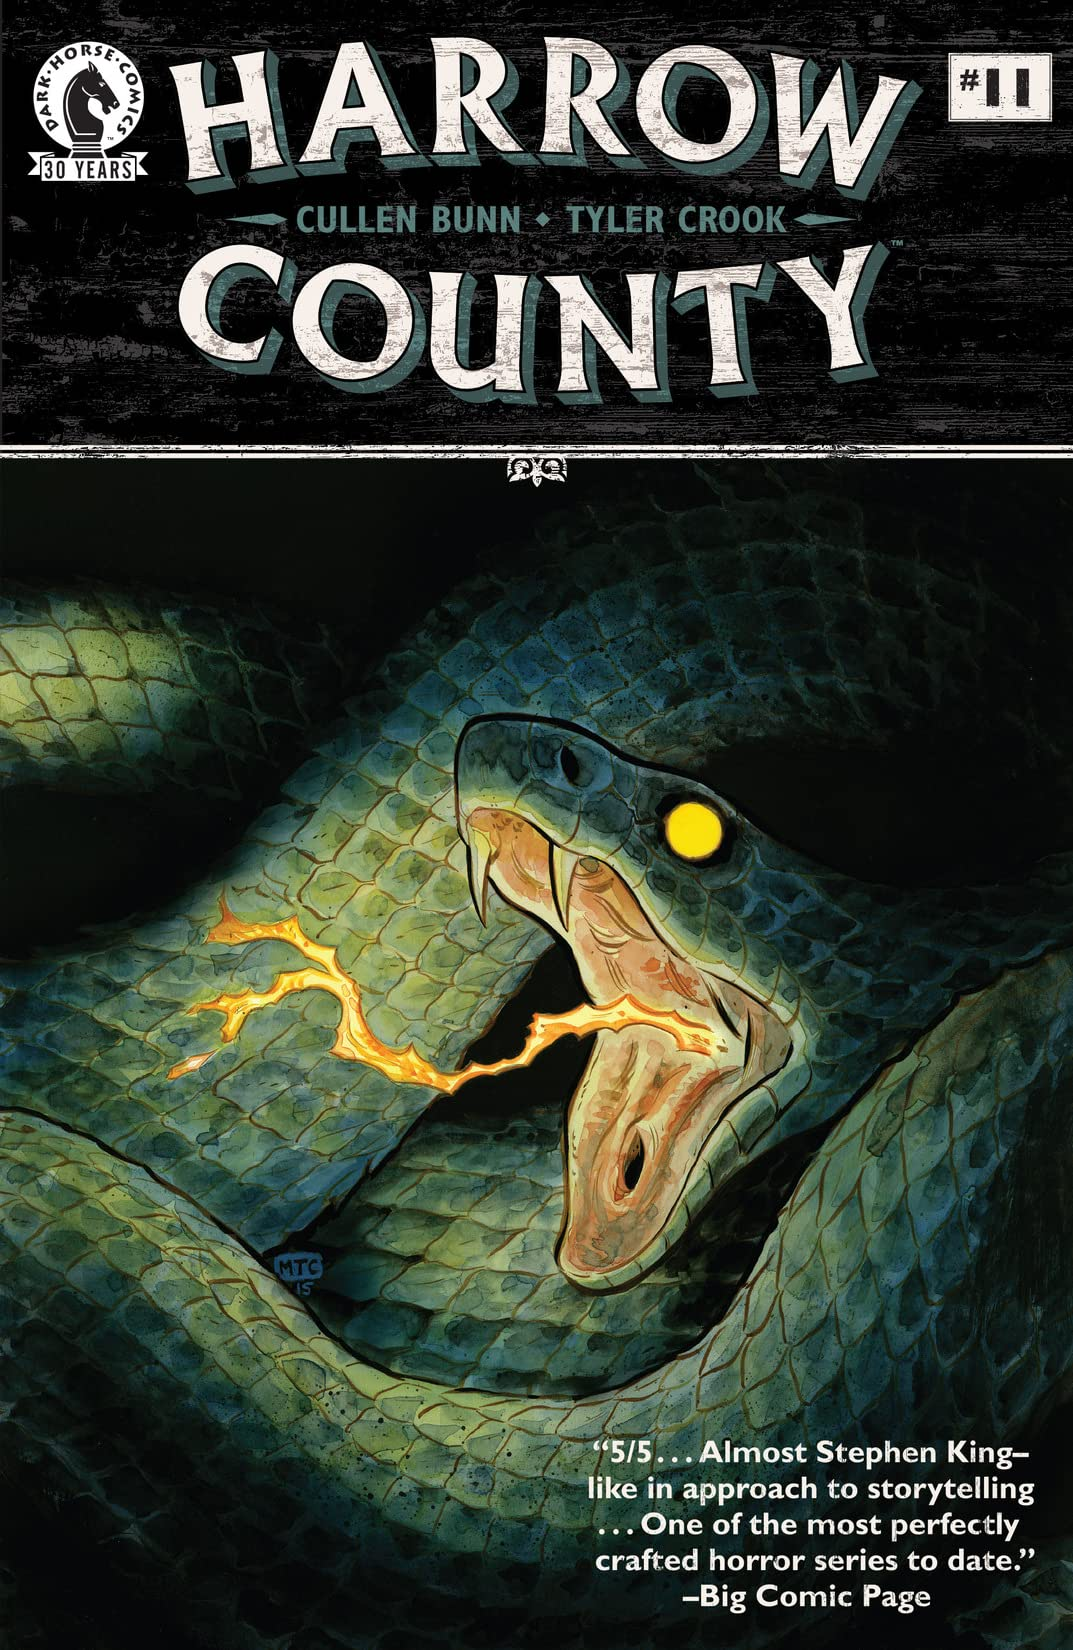 Harrow County #11